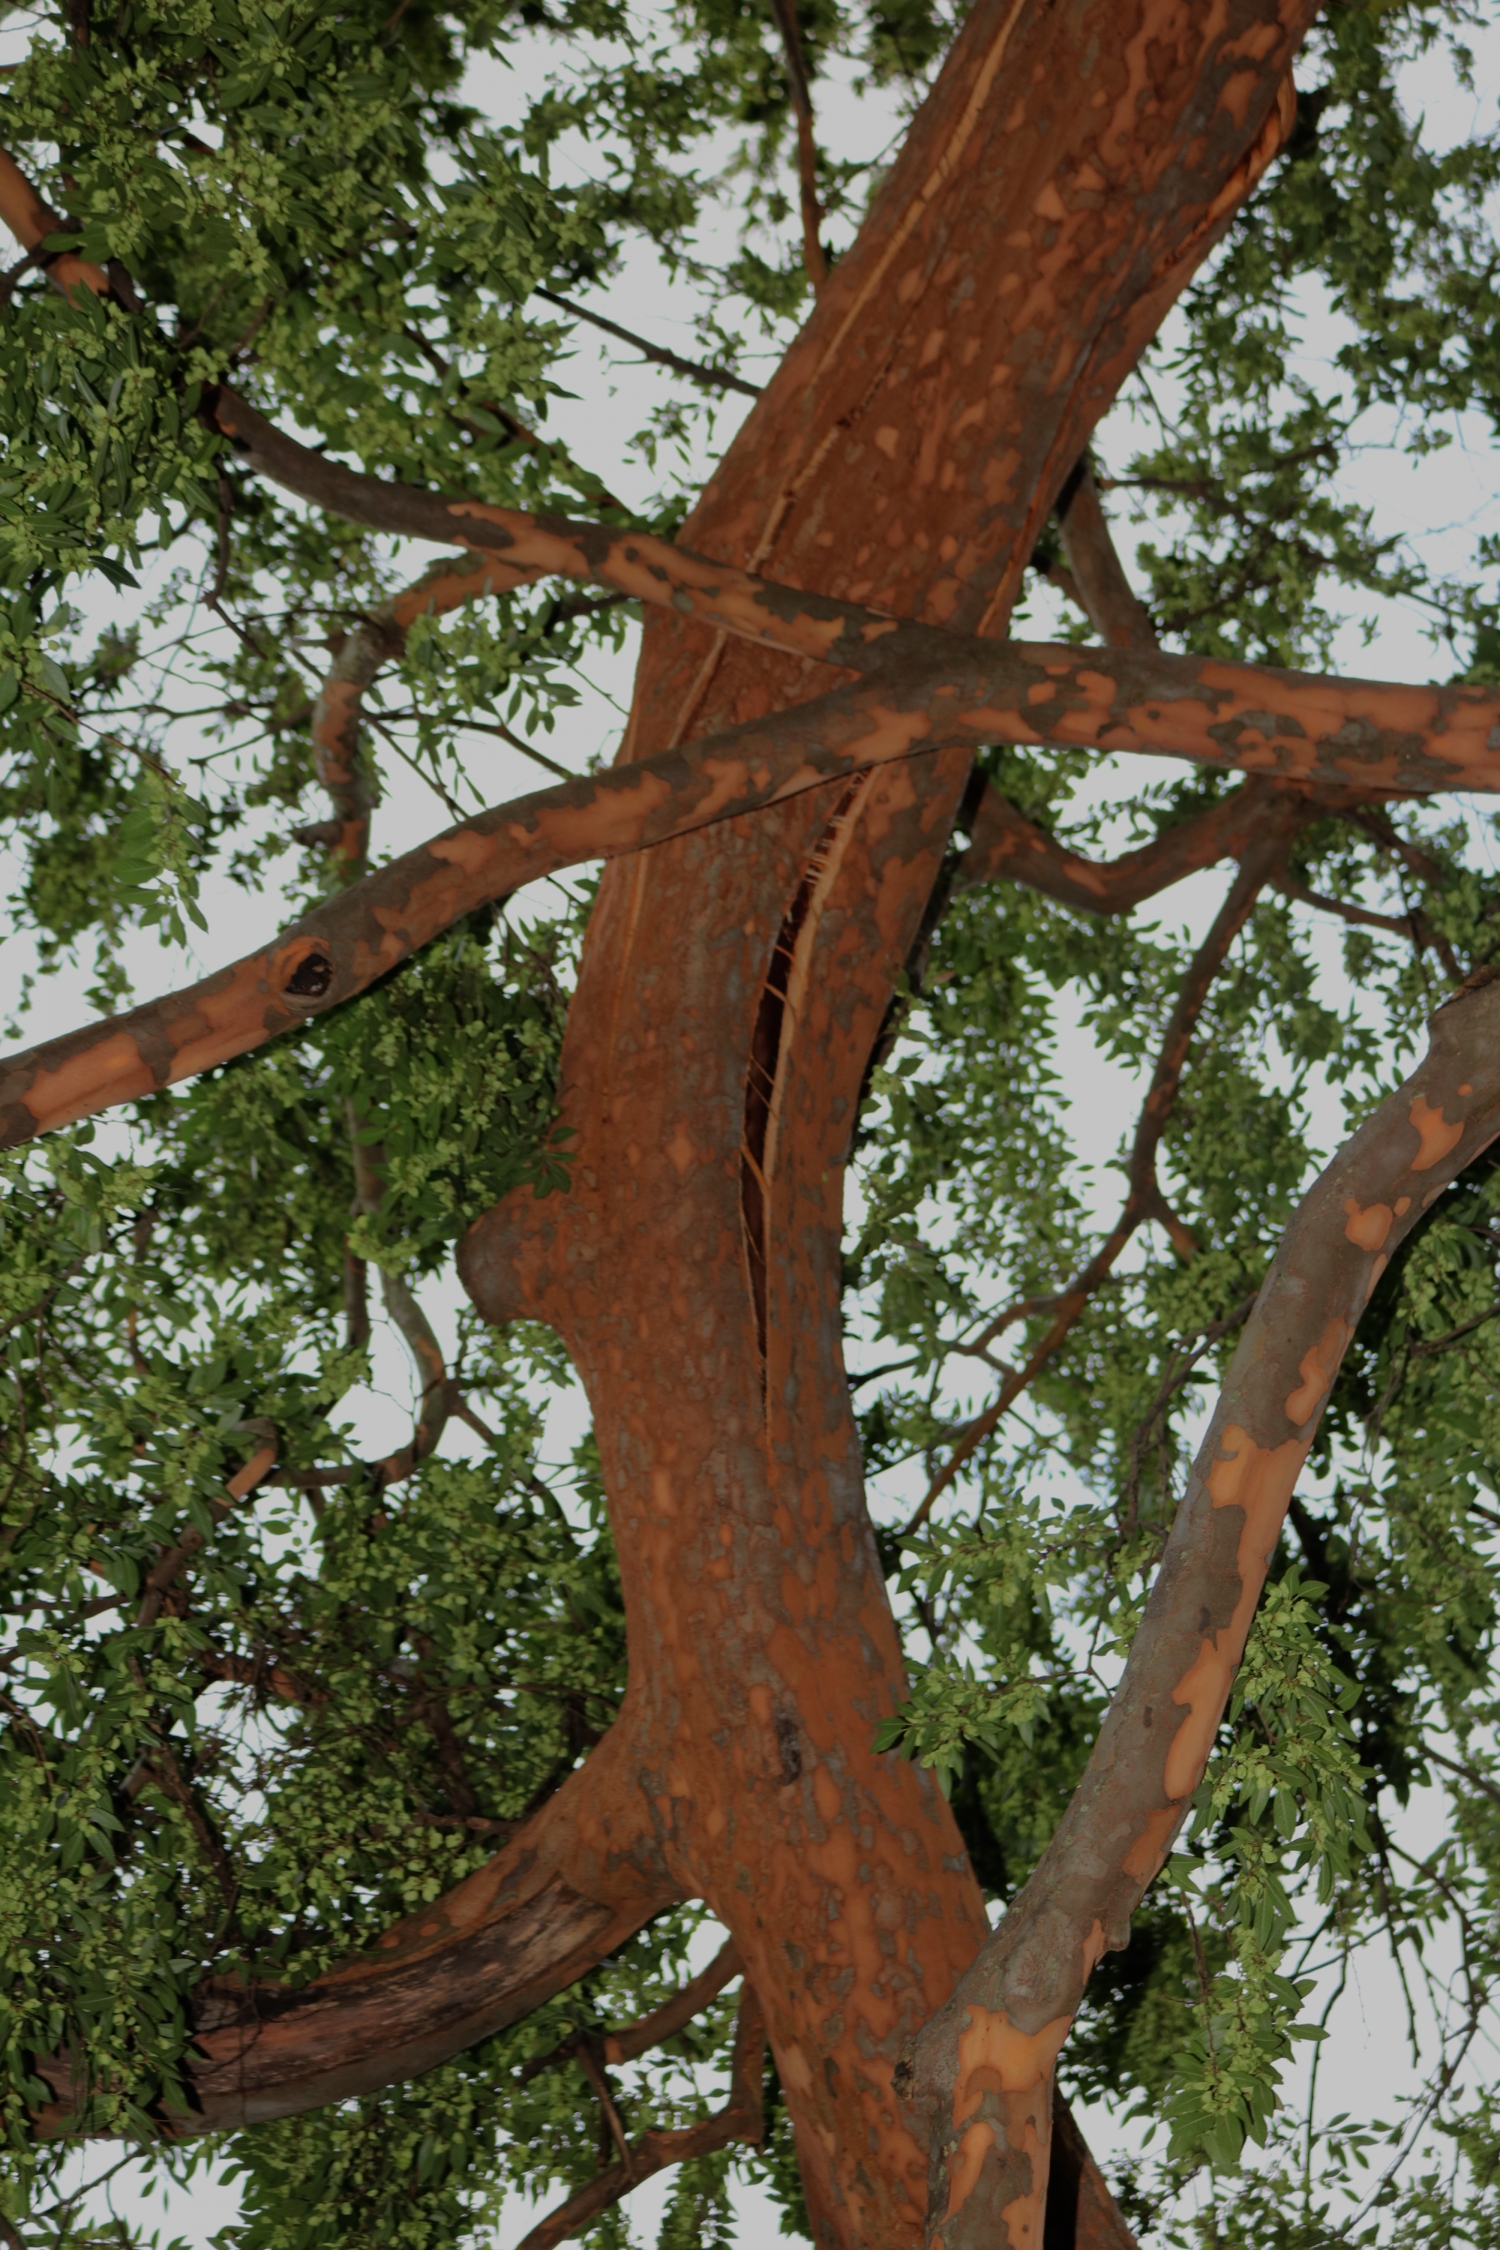 Photo showing the spiral fracture on the Elizabeth farm Elm tree